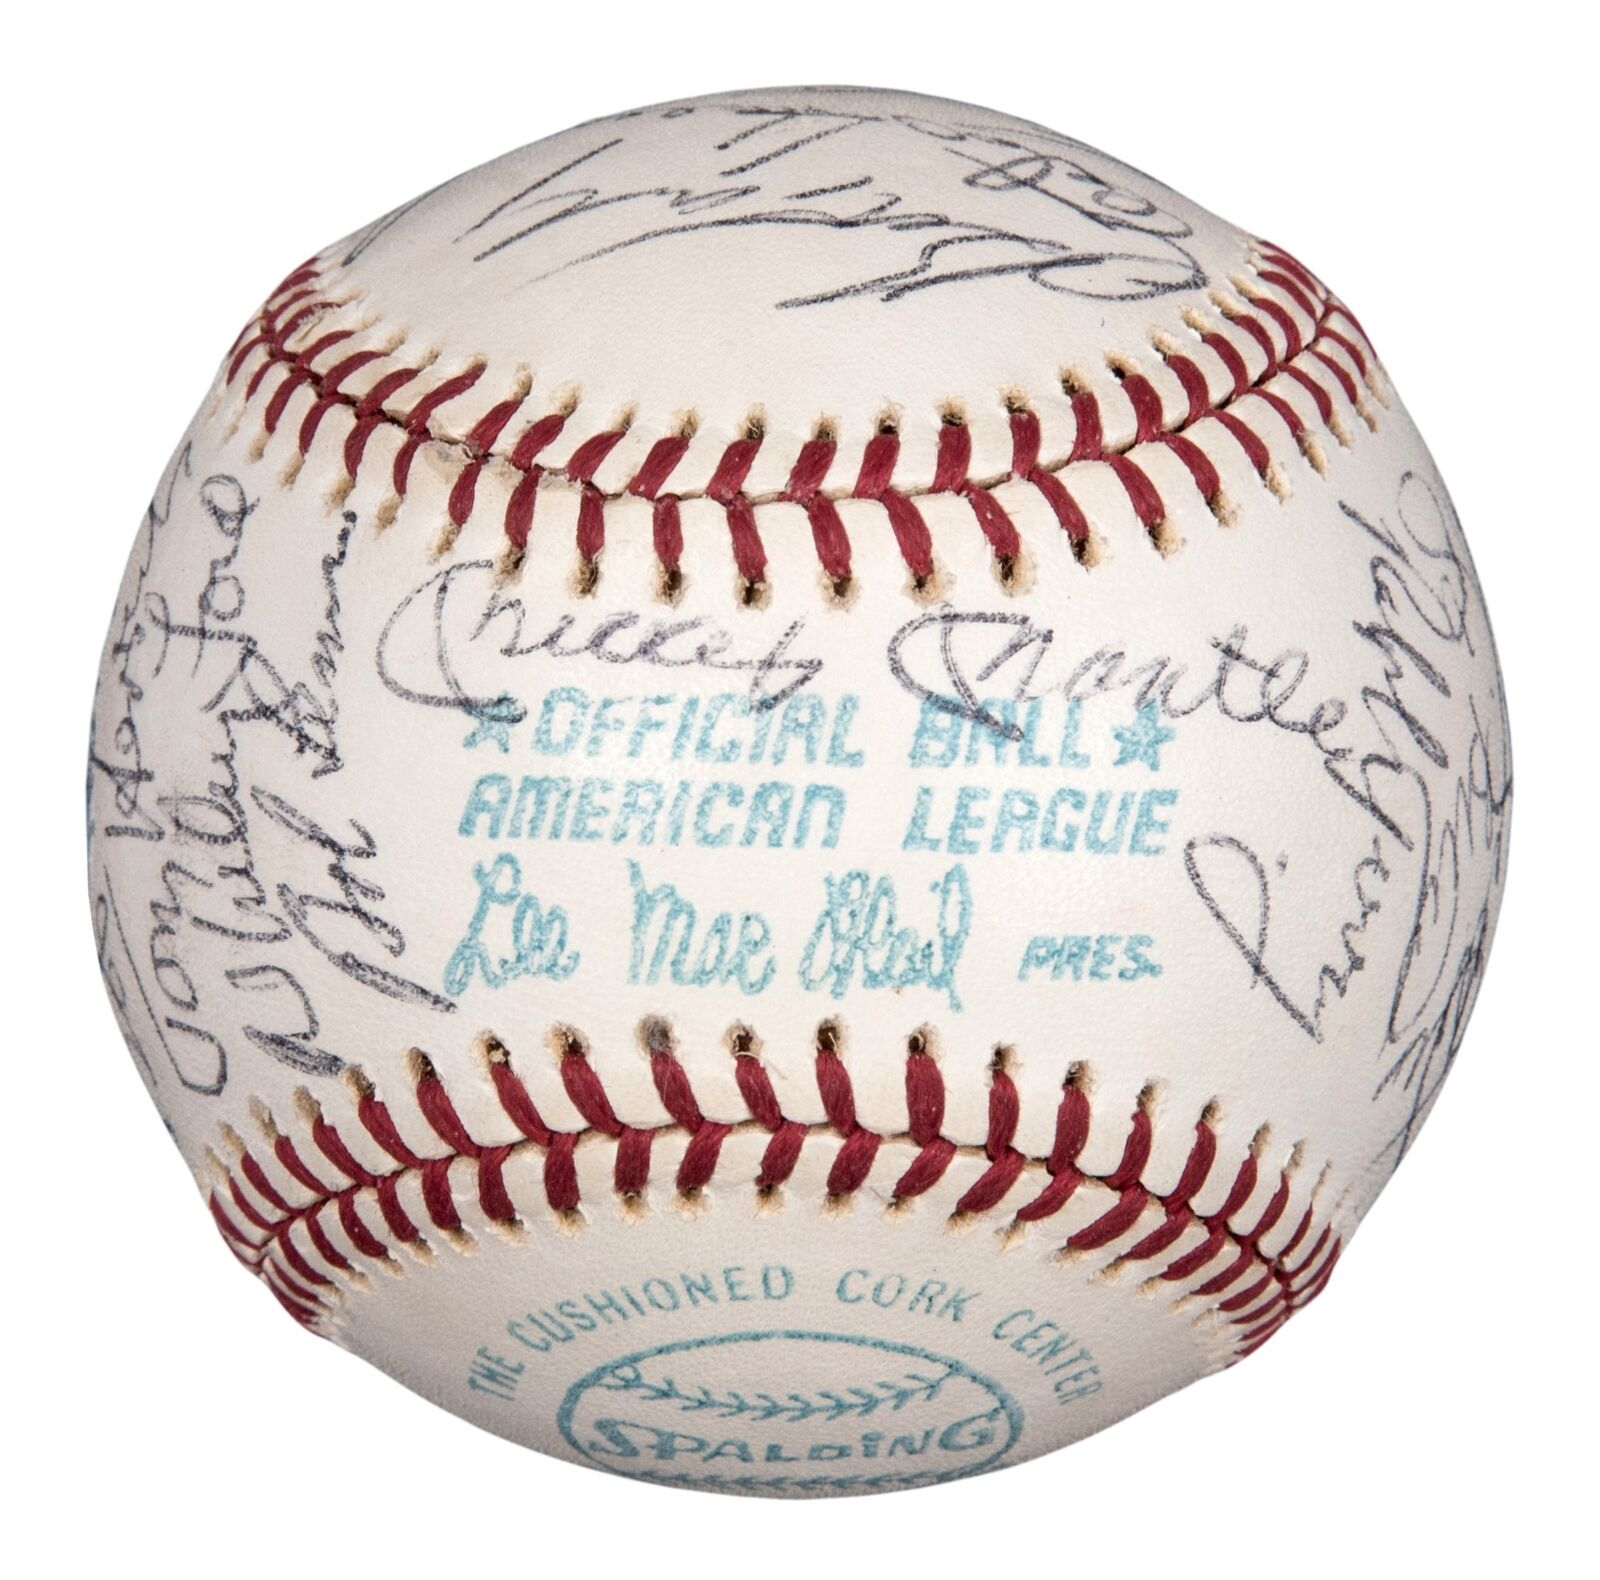 Mickey Mantle Joe Dimaggio Elston Howard Yankees Legends Signed Baseball PSA DNA